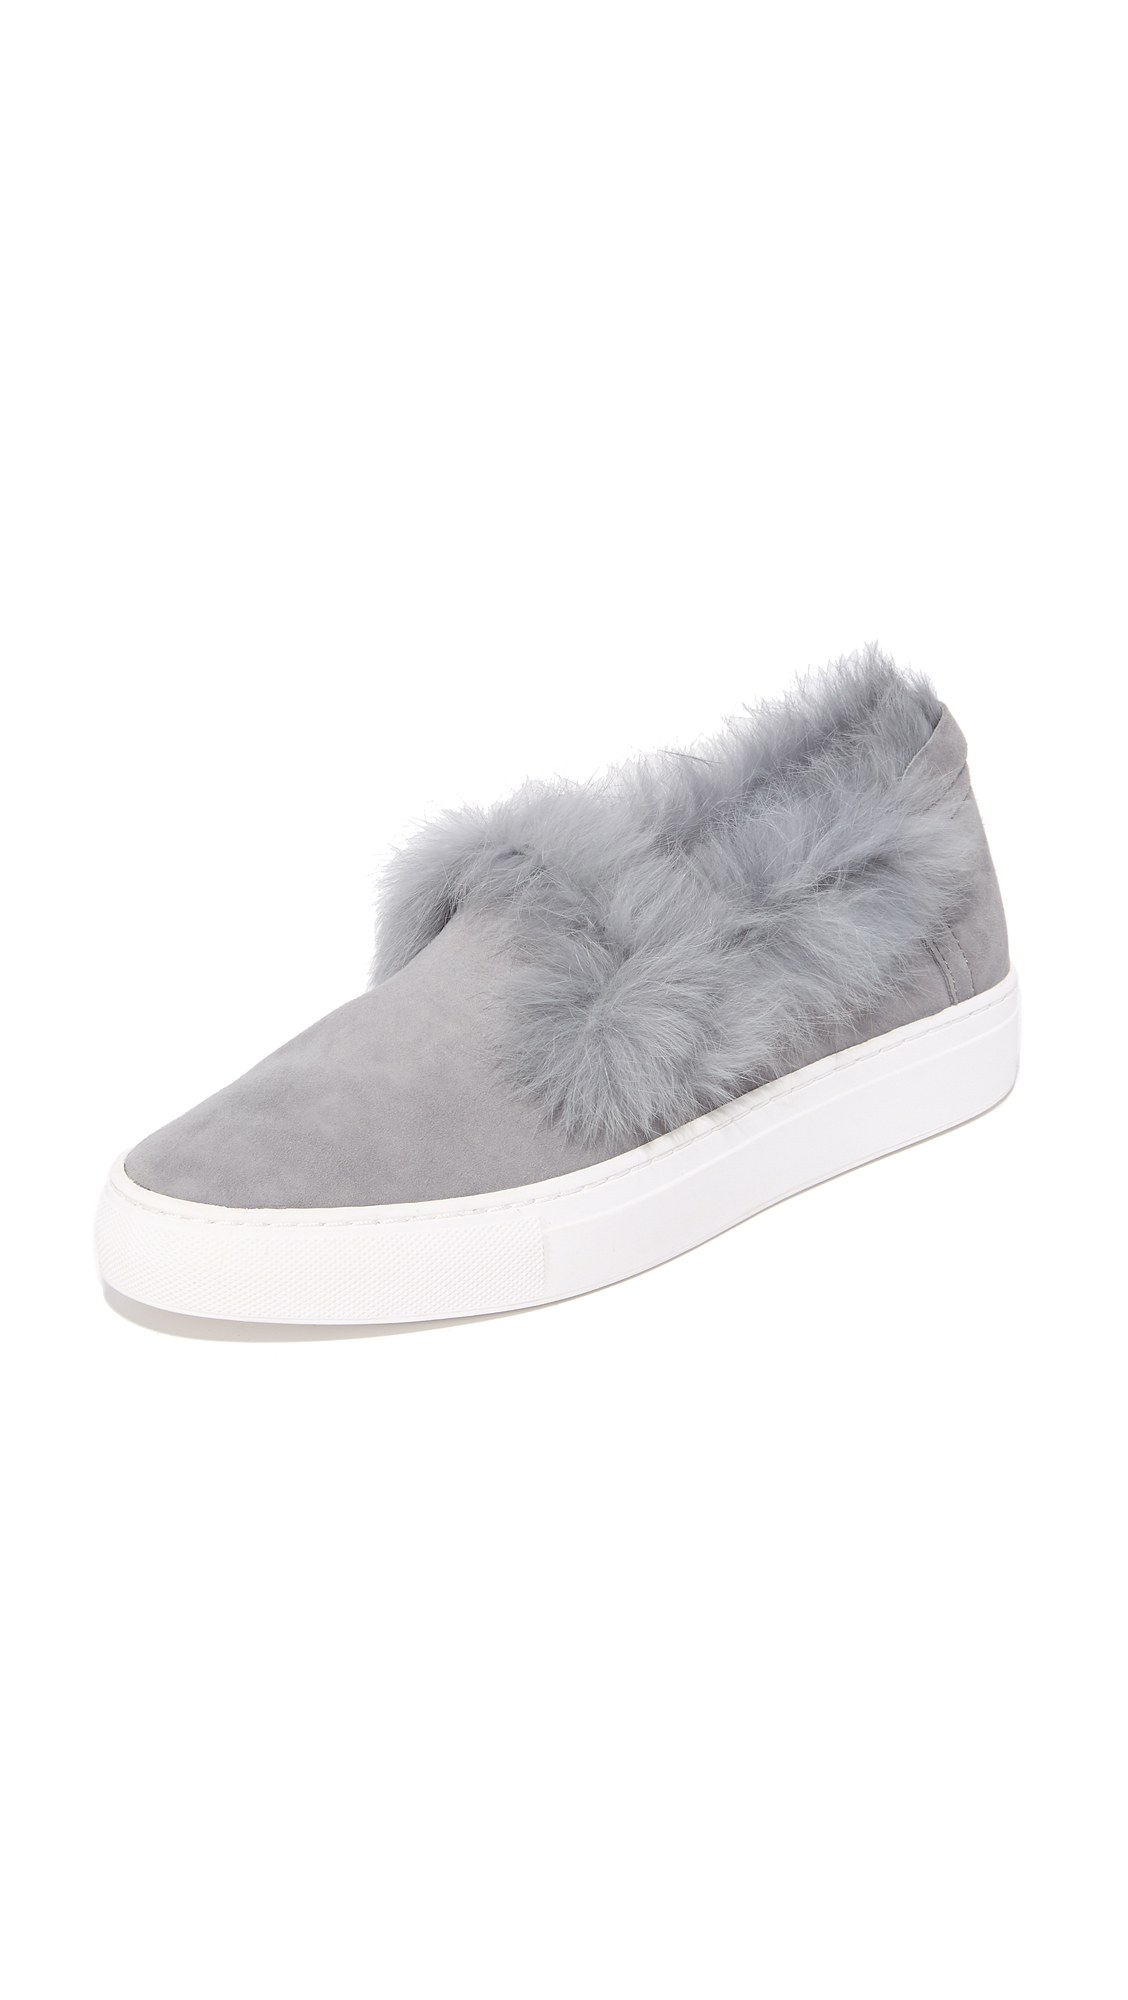 Rachel Zoe Burke Fur Slip On Sneakers - Steel